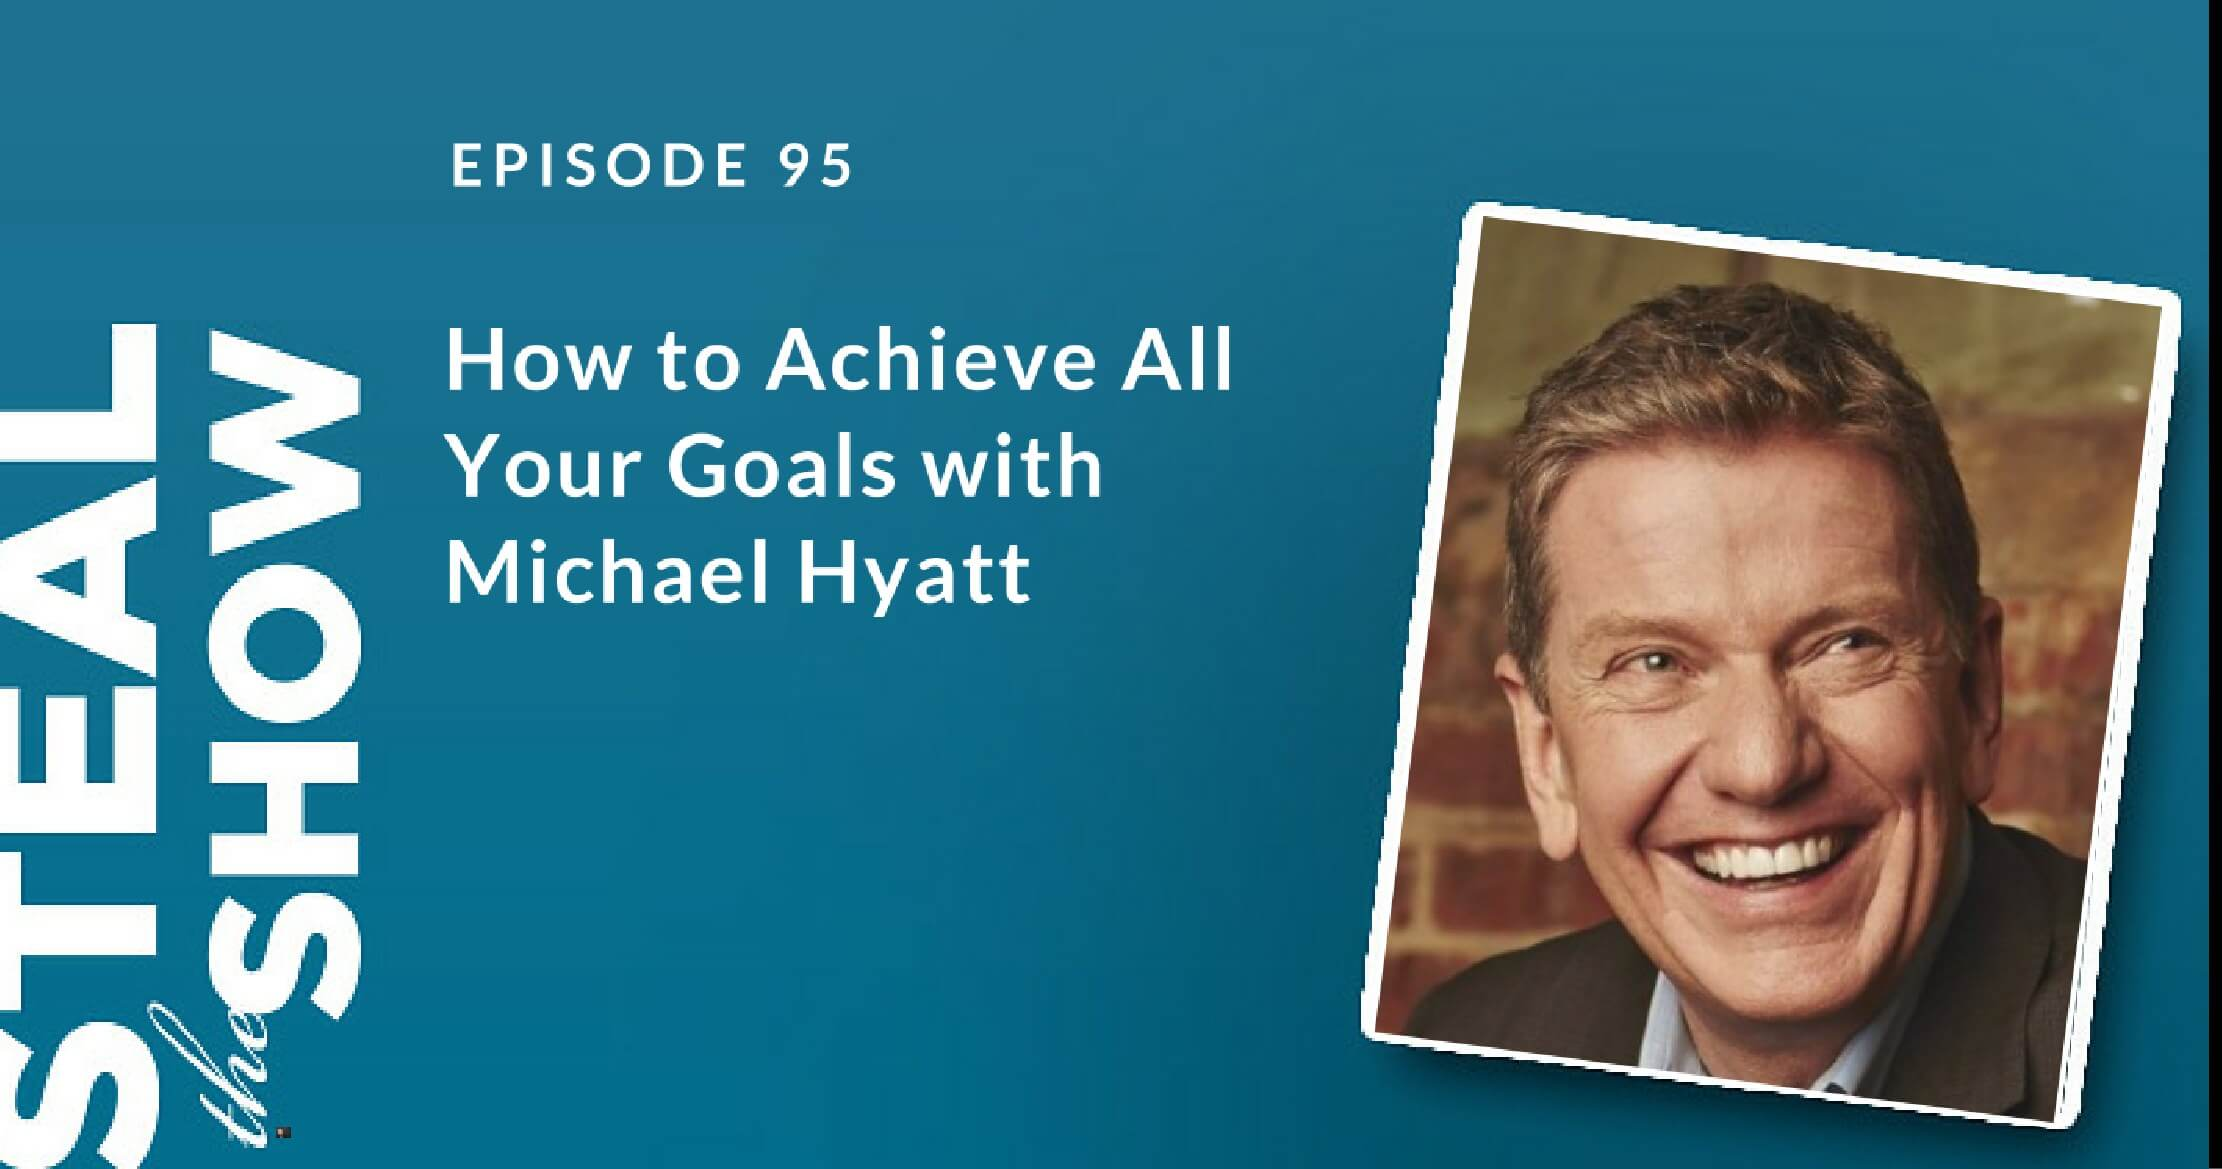 095 How to Achieve All Your Goals with Michael Hyatt